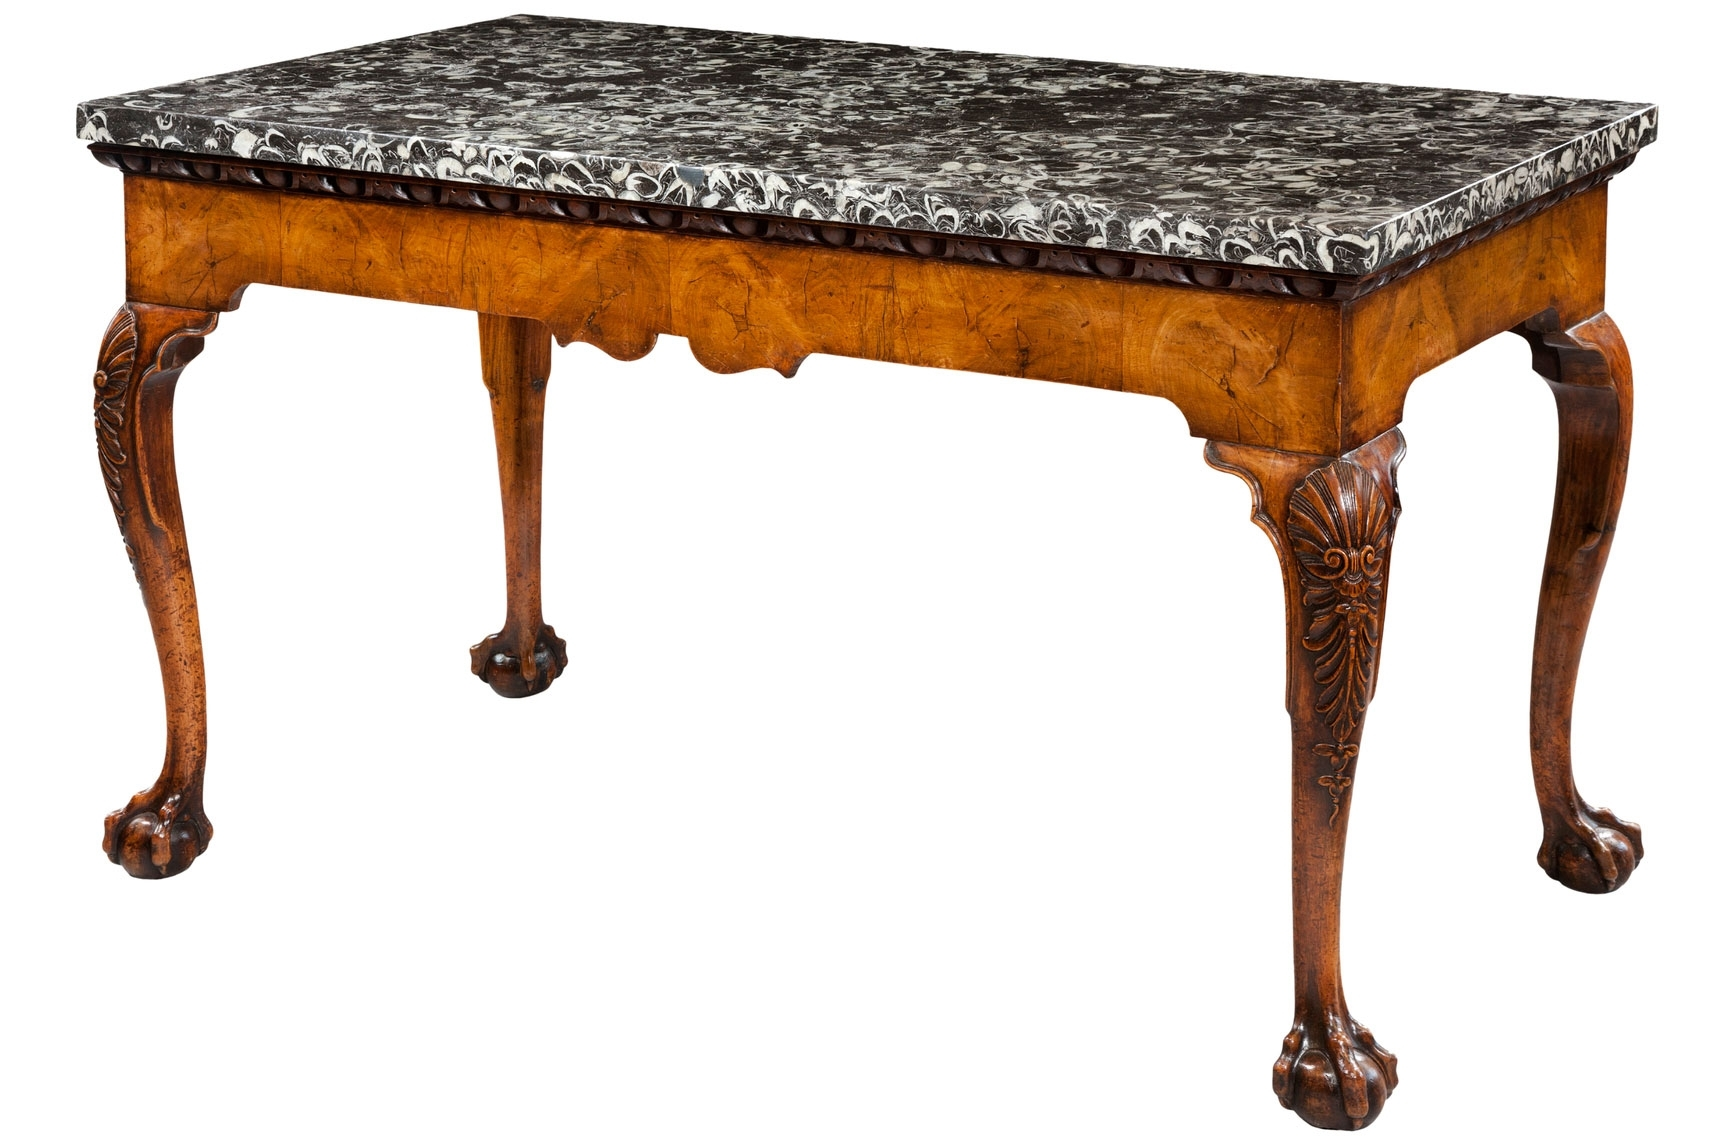 Antique Marble Top Tables with Large Slab Marble Coffee Tables With Antiqued Silver Base (Image 5 of 30)